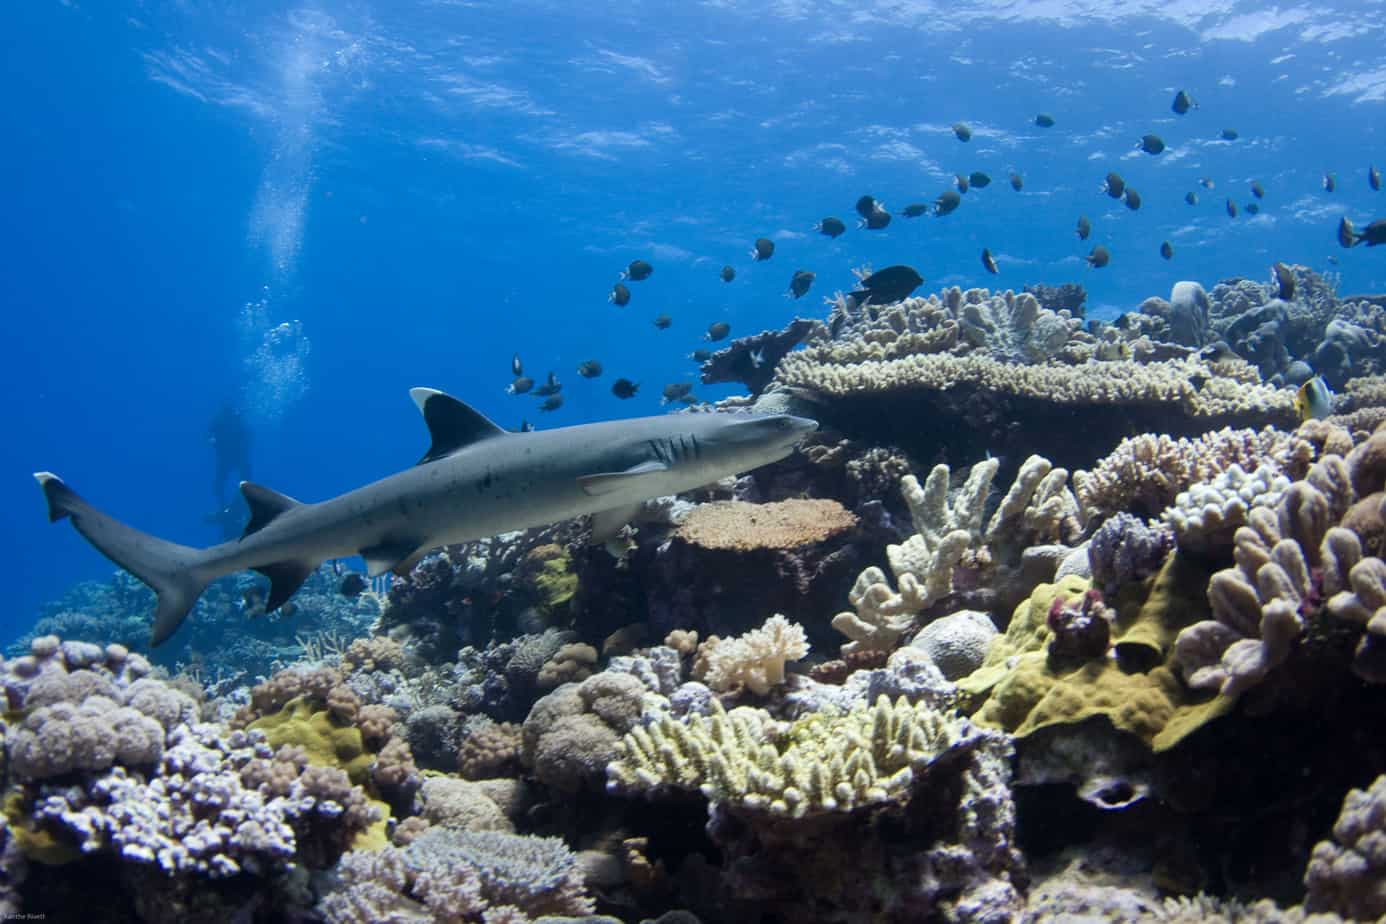 Sharks of the Coral Sea